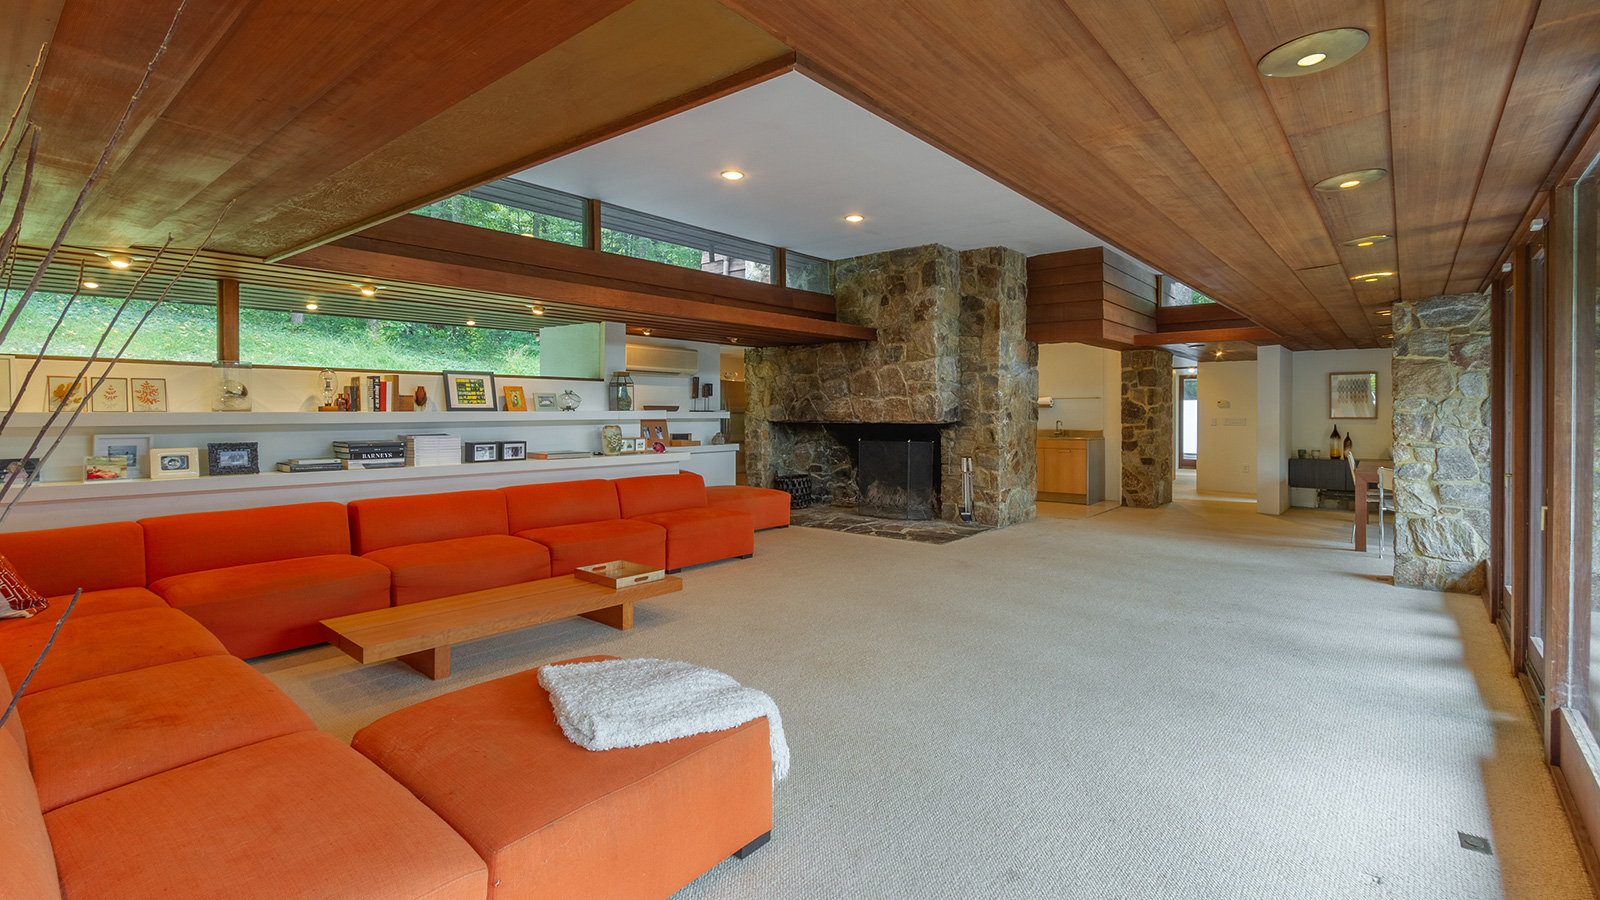 Five bedroom midcentury modern home by architect Allan J Gelbin is for sale in Connecticut